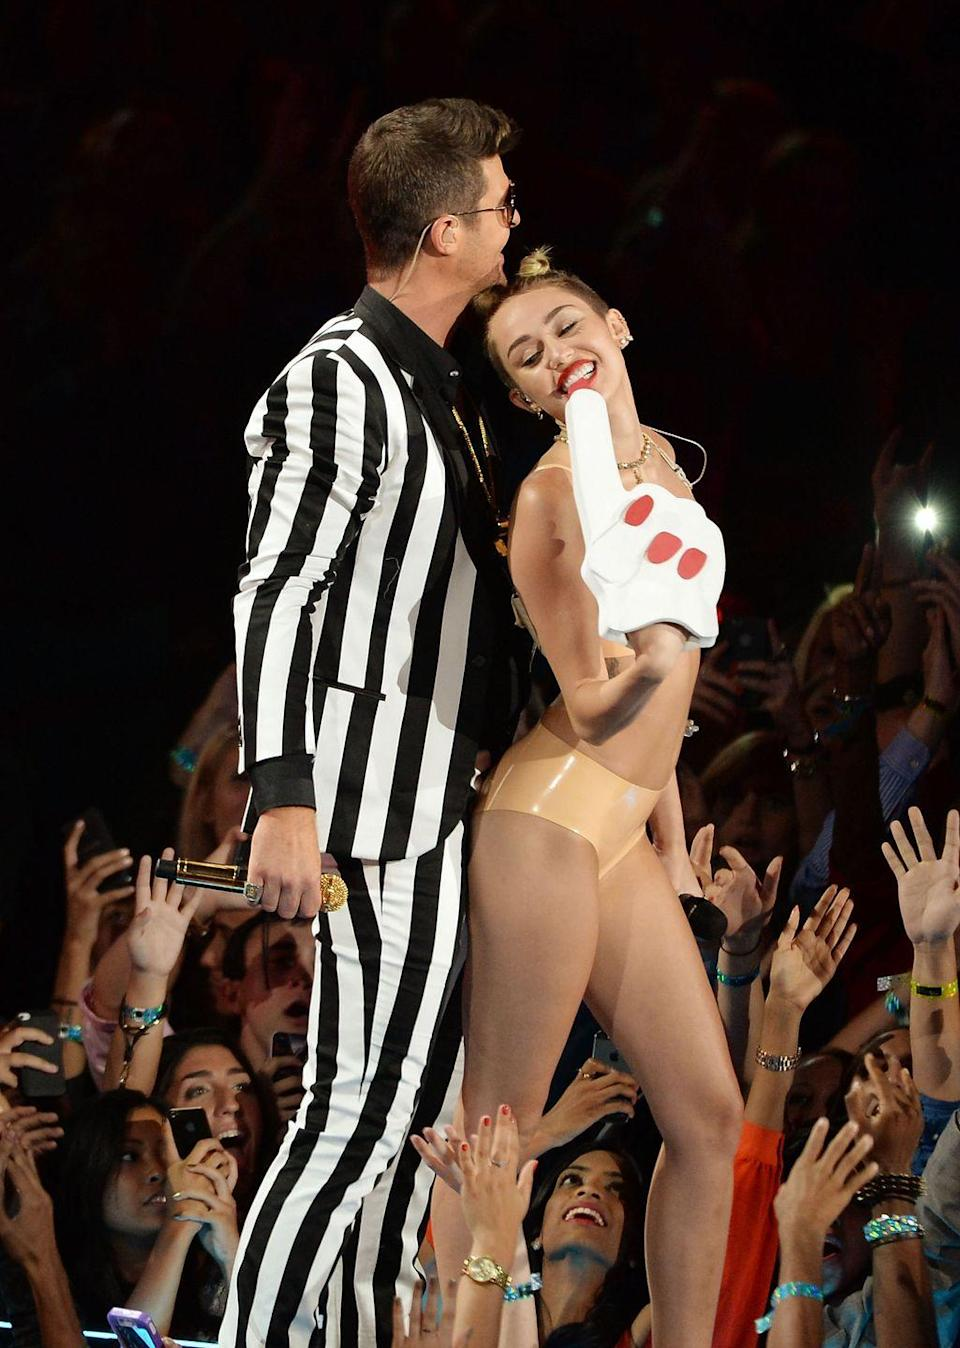 <p>Miley Cyrus's foam finger from the 2013 VMAs reached icon status for all of the wrong reasons. The accessory was a part of the singer's risqué dance with Robin Thicke which...let's just say will live on in infamy. </p>